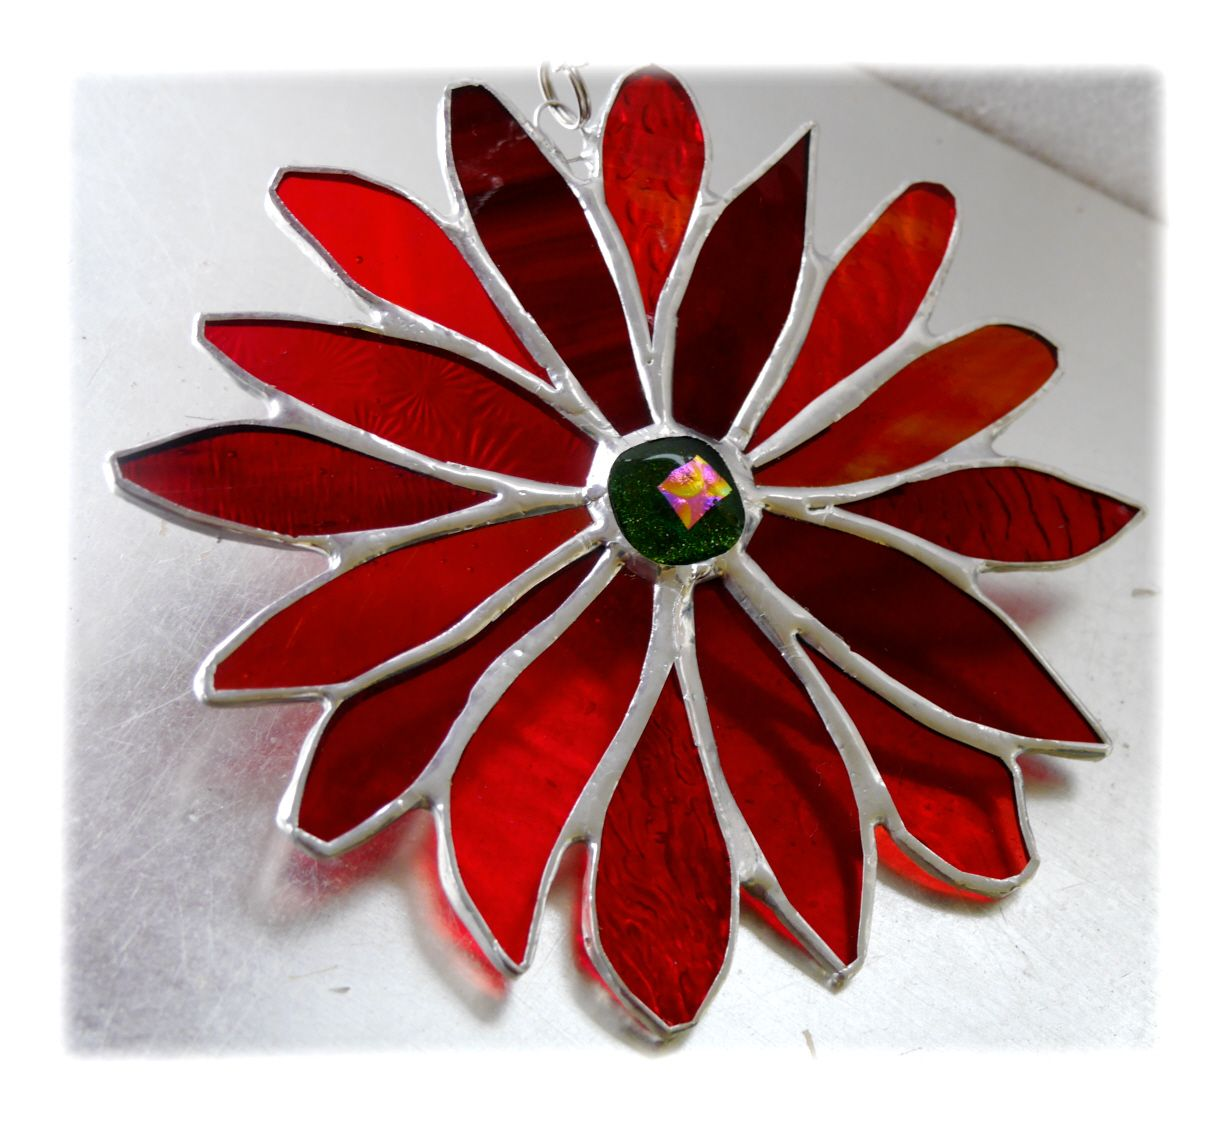 RED Fire Flower 001 #1904 FREE 17.50